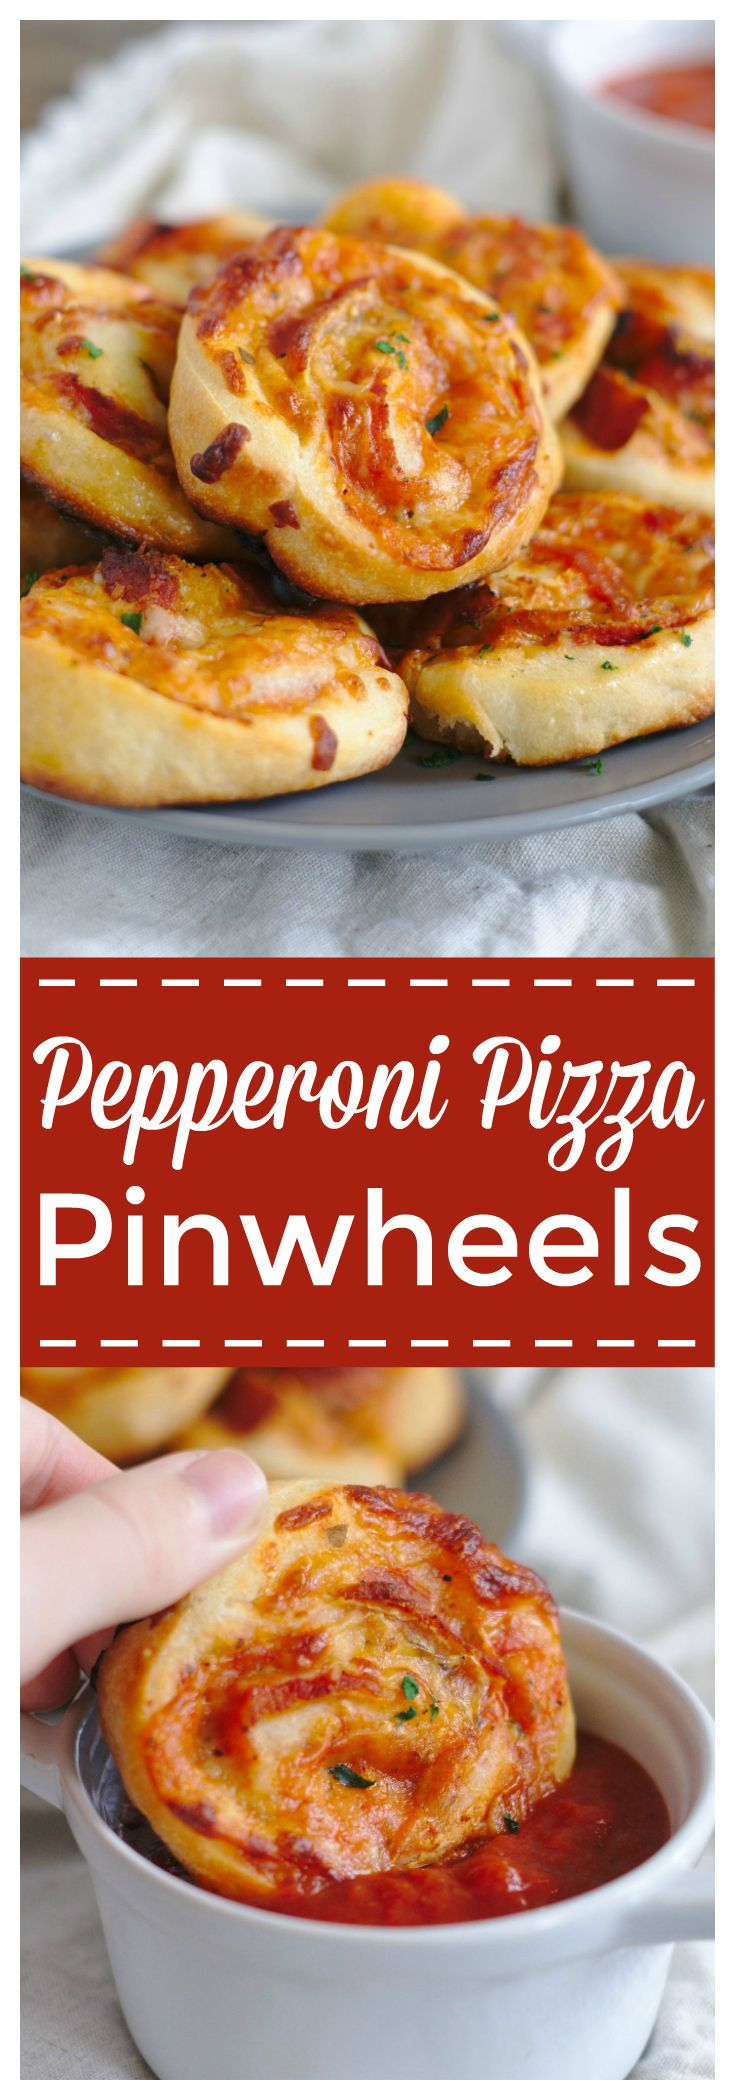 Pizza Pinwheels – A quick and easy appetizer! Pizza dough filled with marinara sauce, mozzarella, parmesan, and pepperoni and baked until golden brown. The ultimate pinwheel recipe! #pepperoni #pinwheels #appetizer #pizza